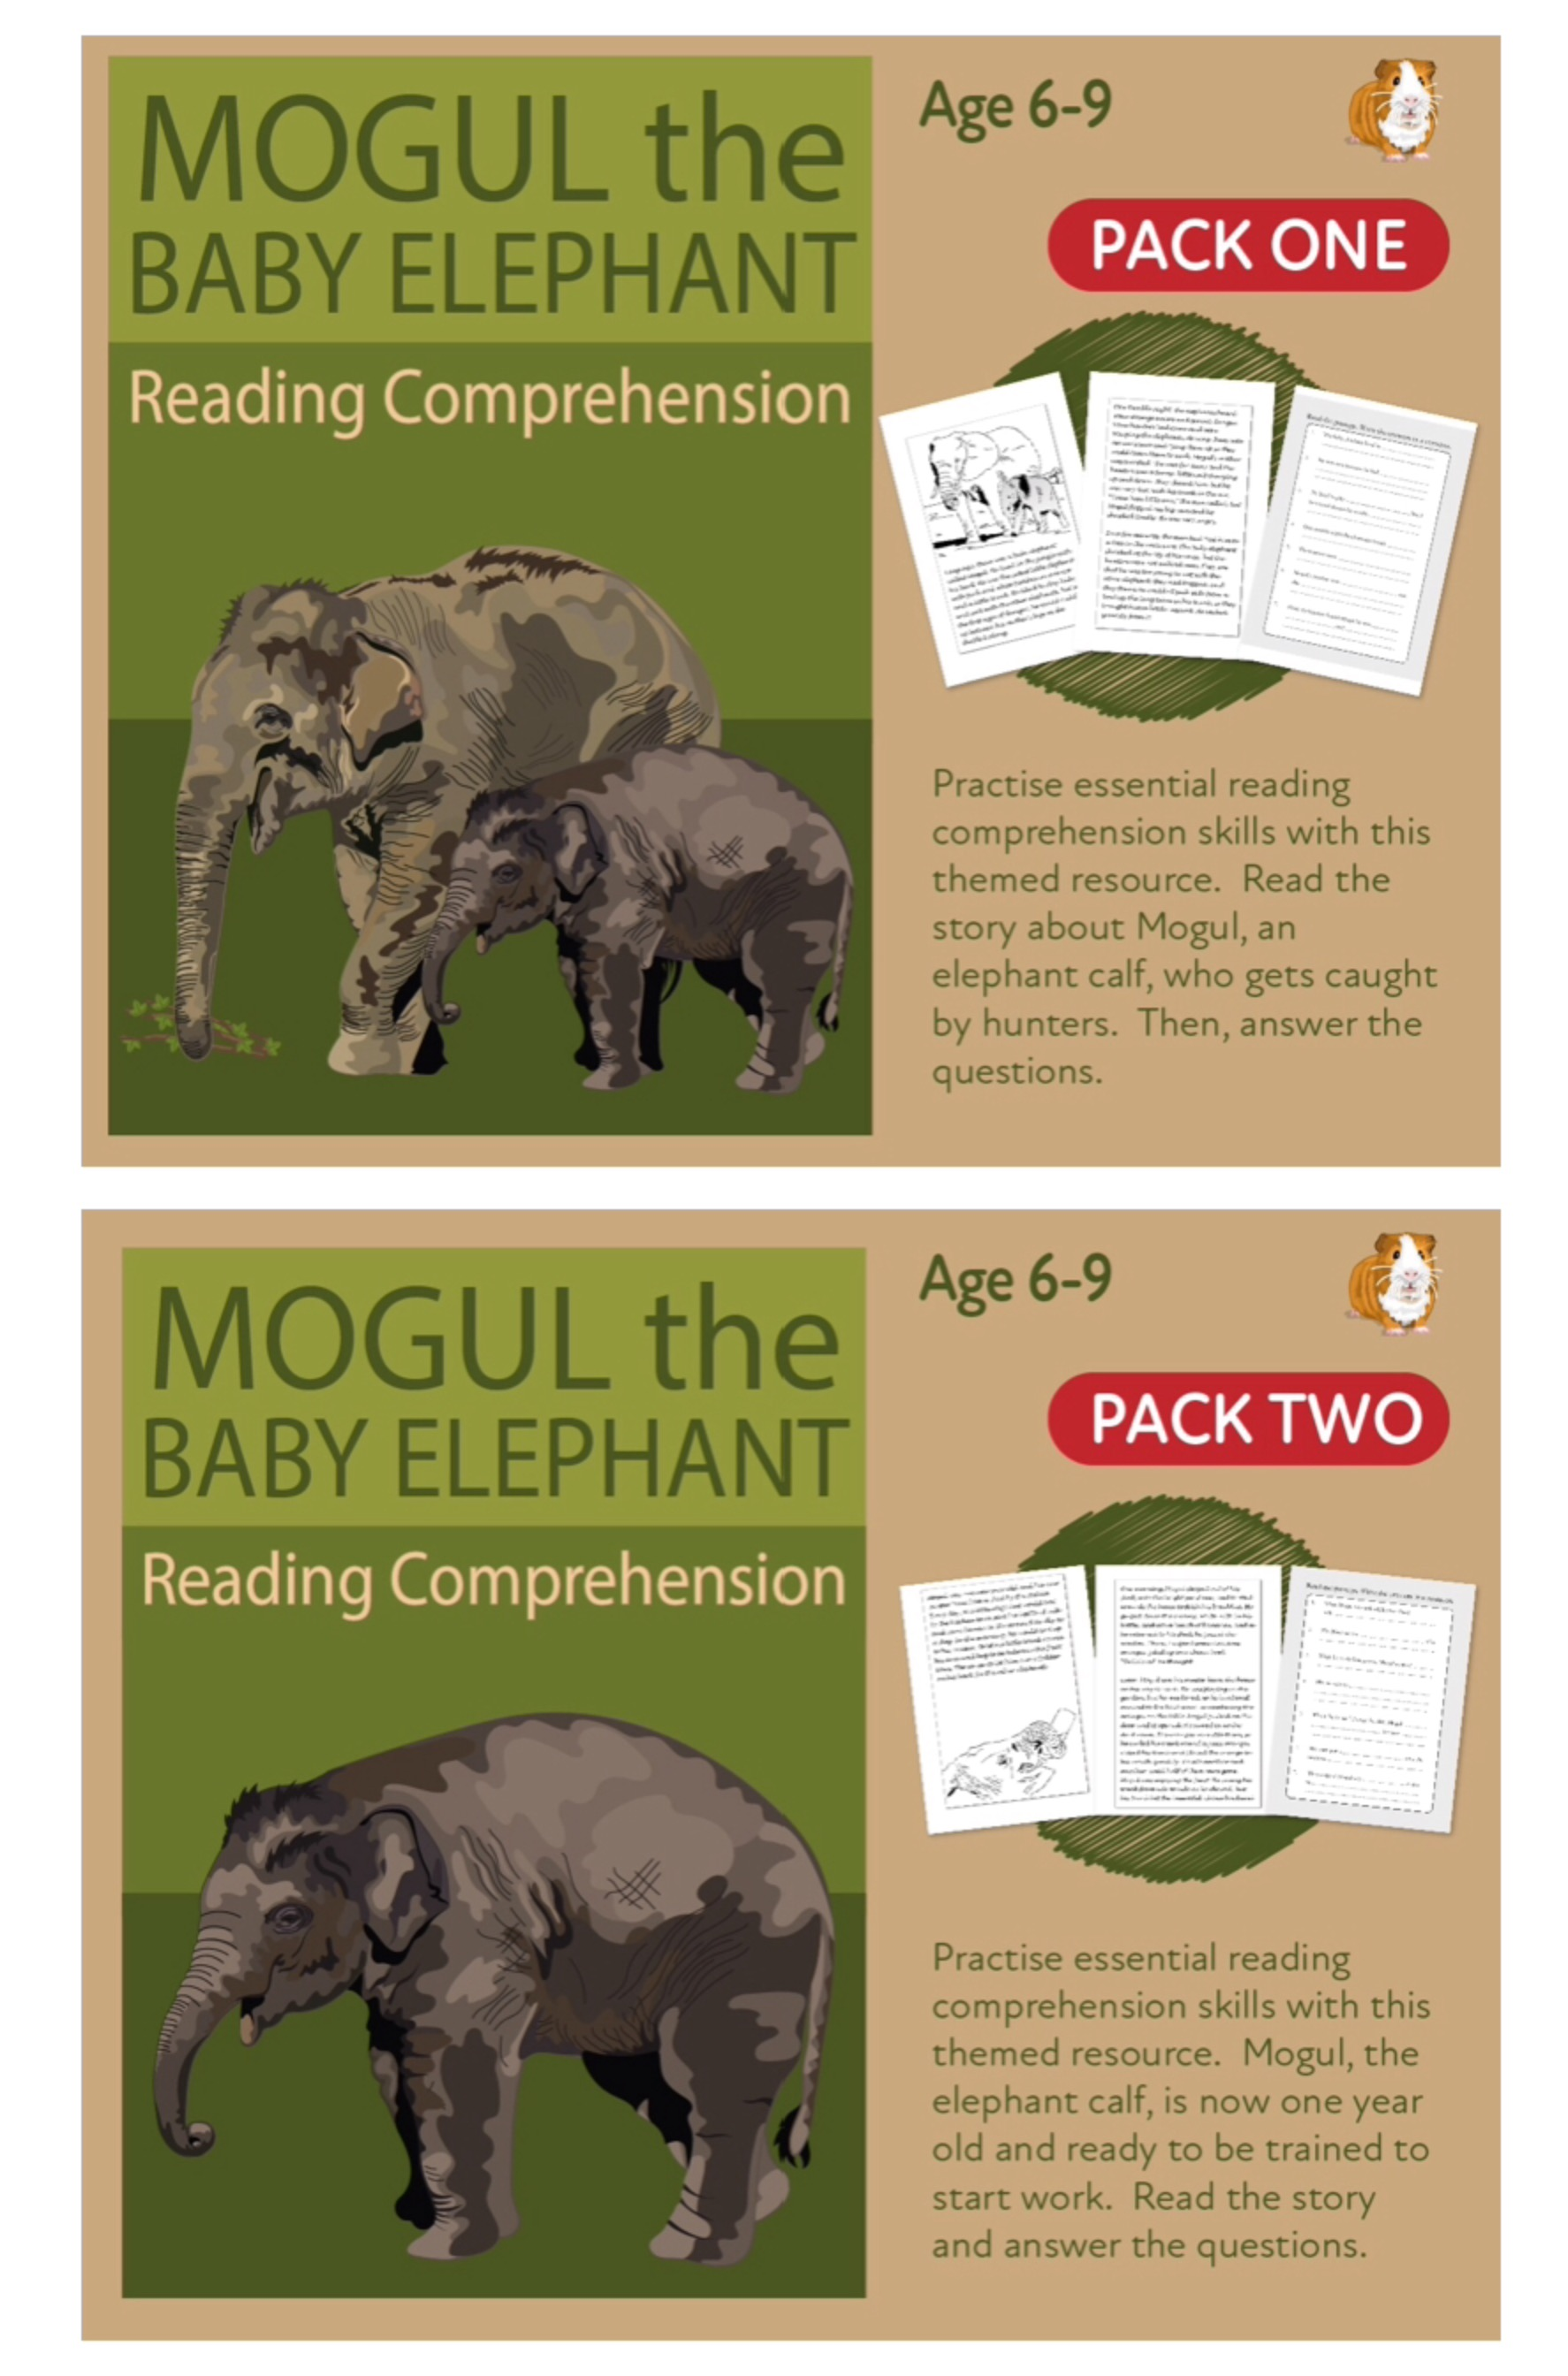 Let's Practise Our Reading Comprehension: Mogul The Baby Elephant: Parts 1 & 2 (6-9 years)